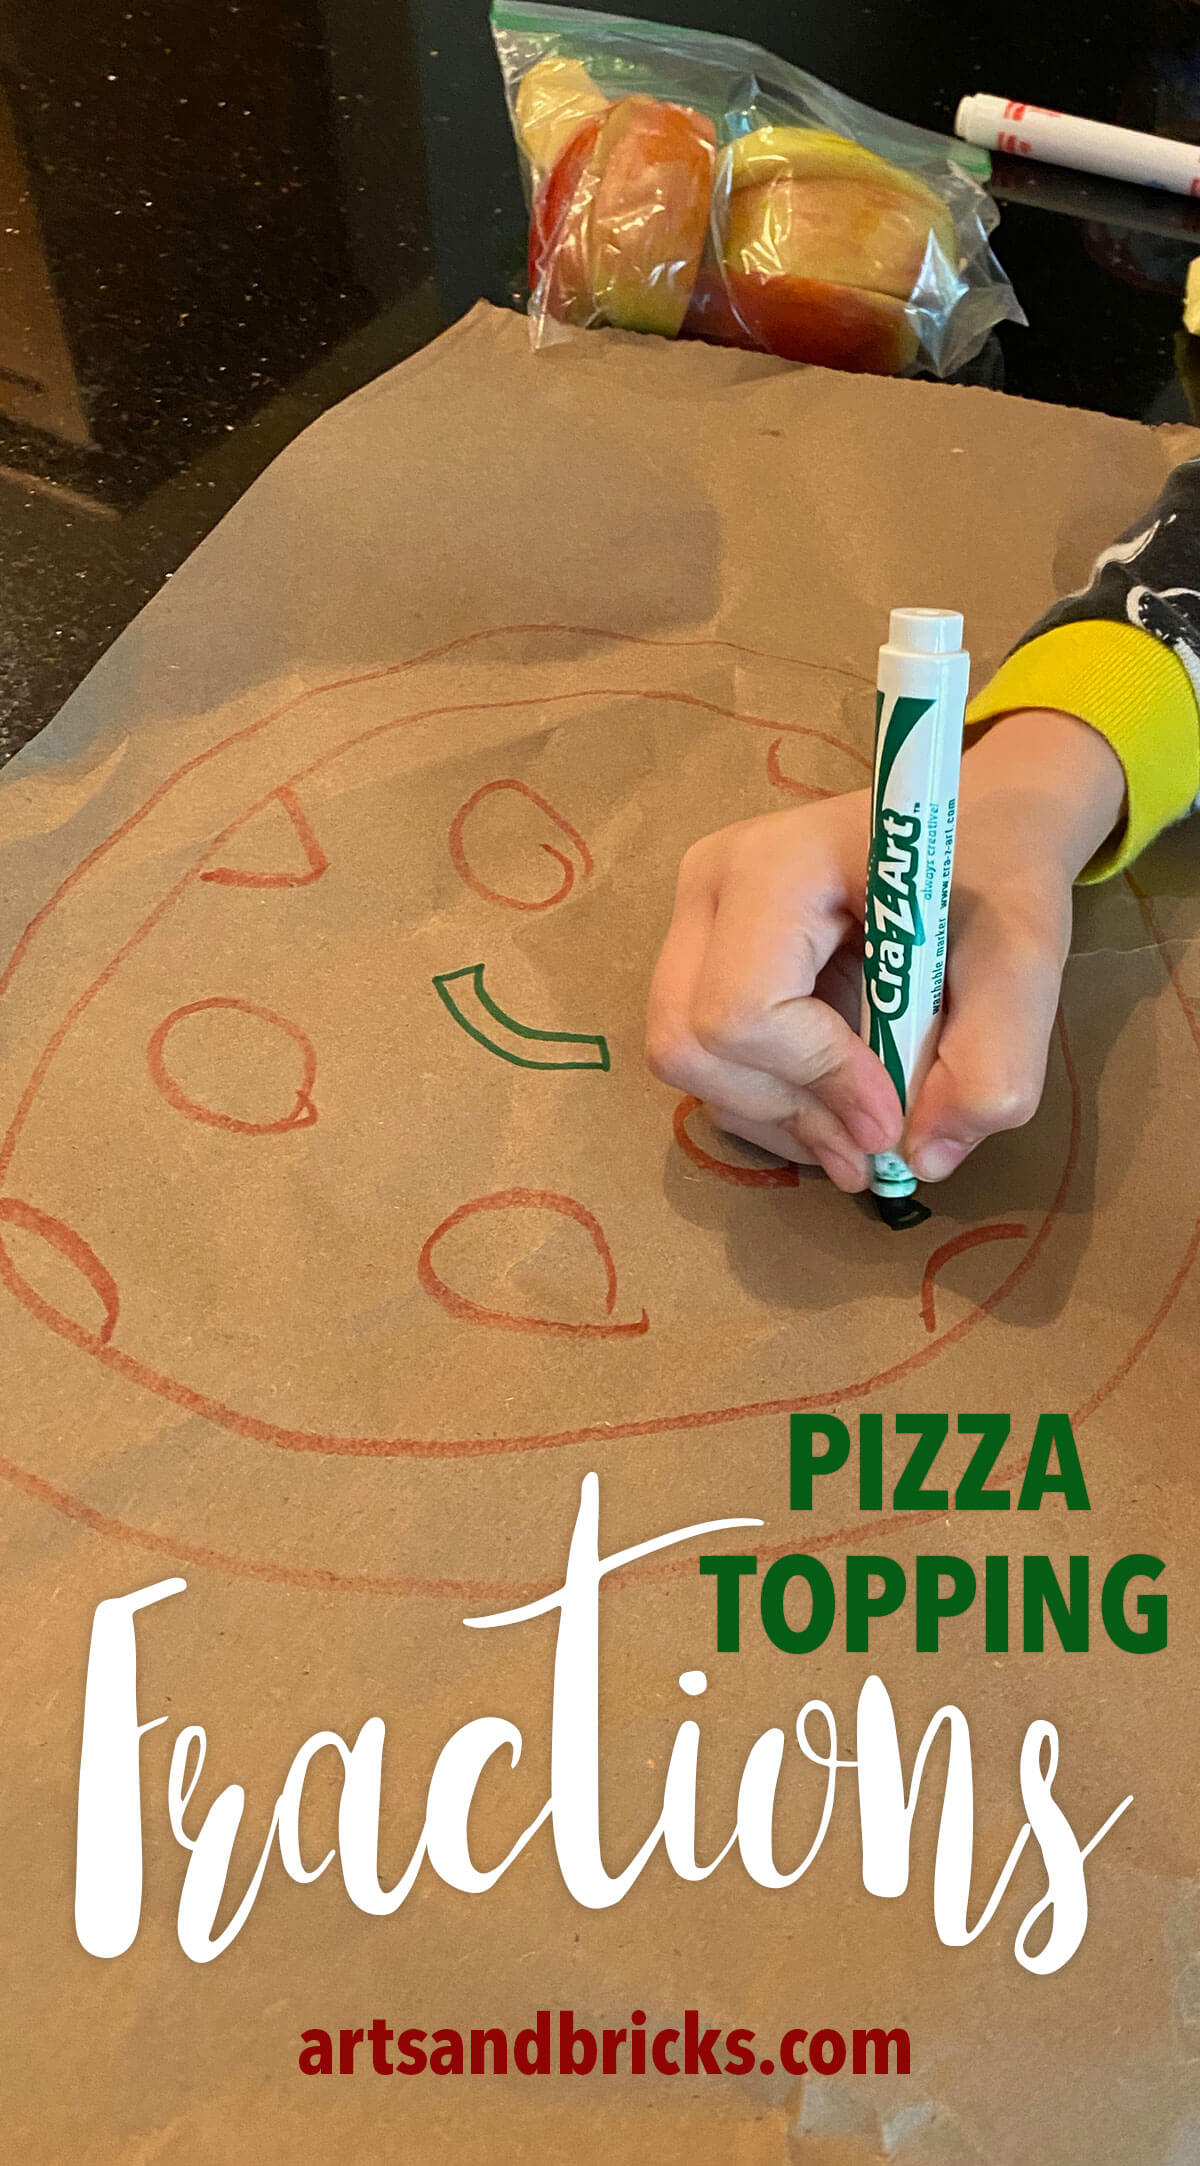 Perfect for first, second, or third-grade students this introductory fraction activity helps children visualize fractions by drawing pizza toppings. With no set-up required, you can do this simple activity with just paper and markers. Useful for teacher and homeschooling parents, alike, get inspired by this quick, effective fraction teaching idea. #fractions #steam #math #activity